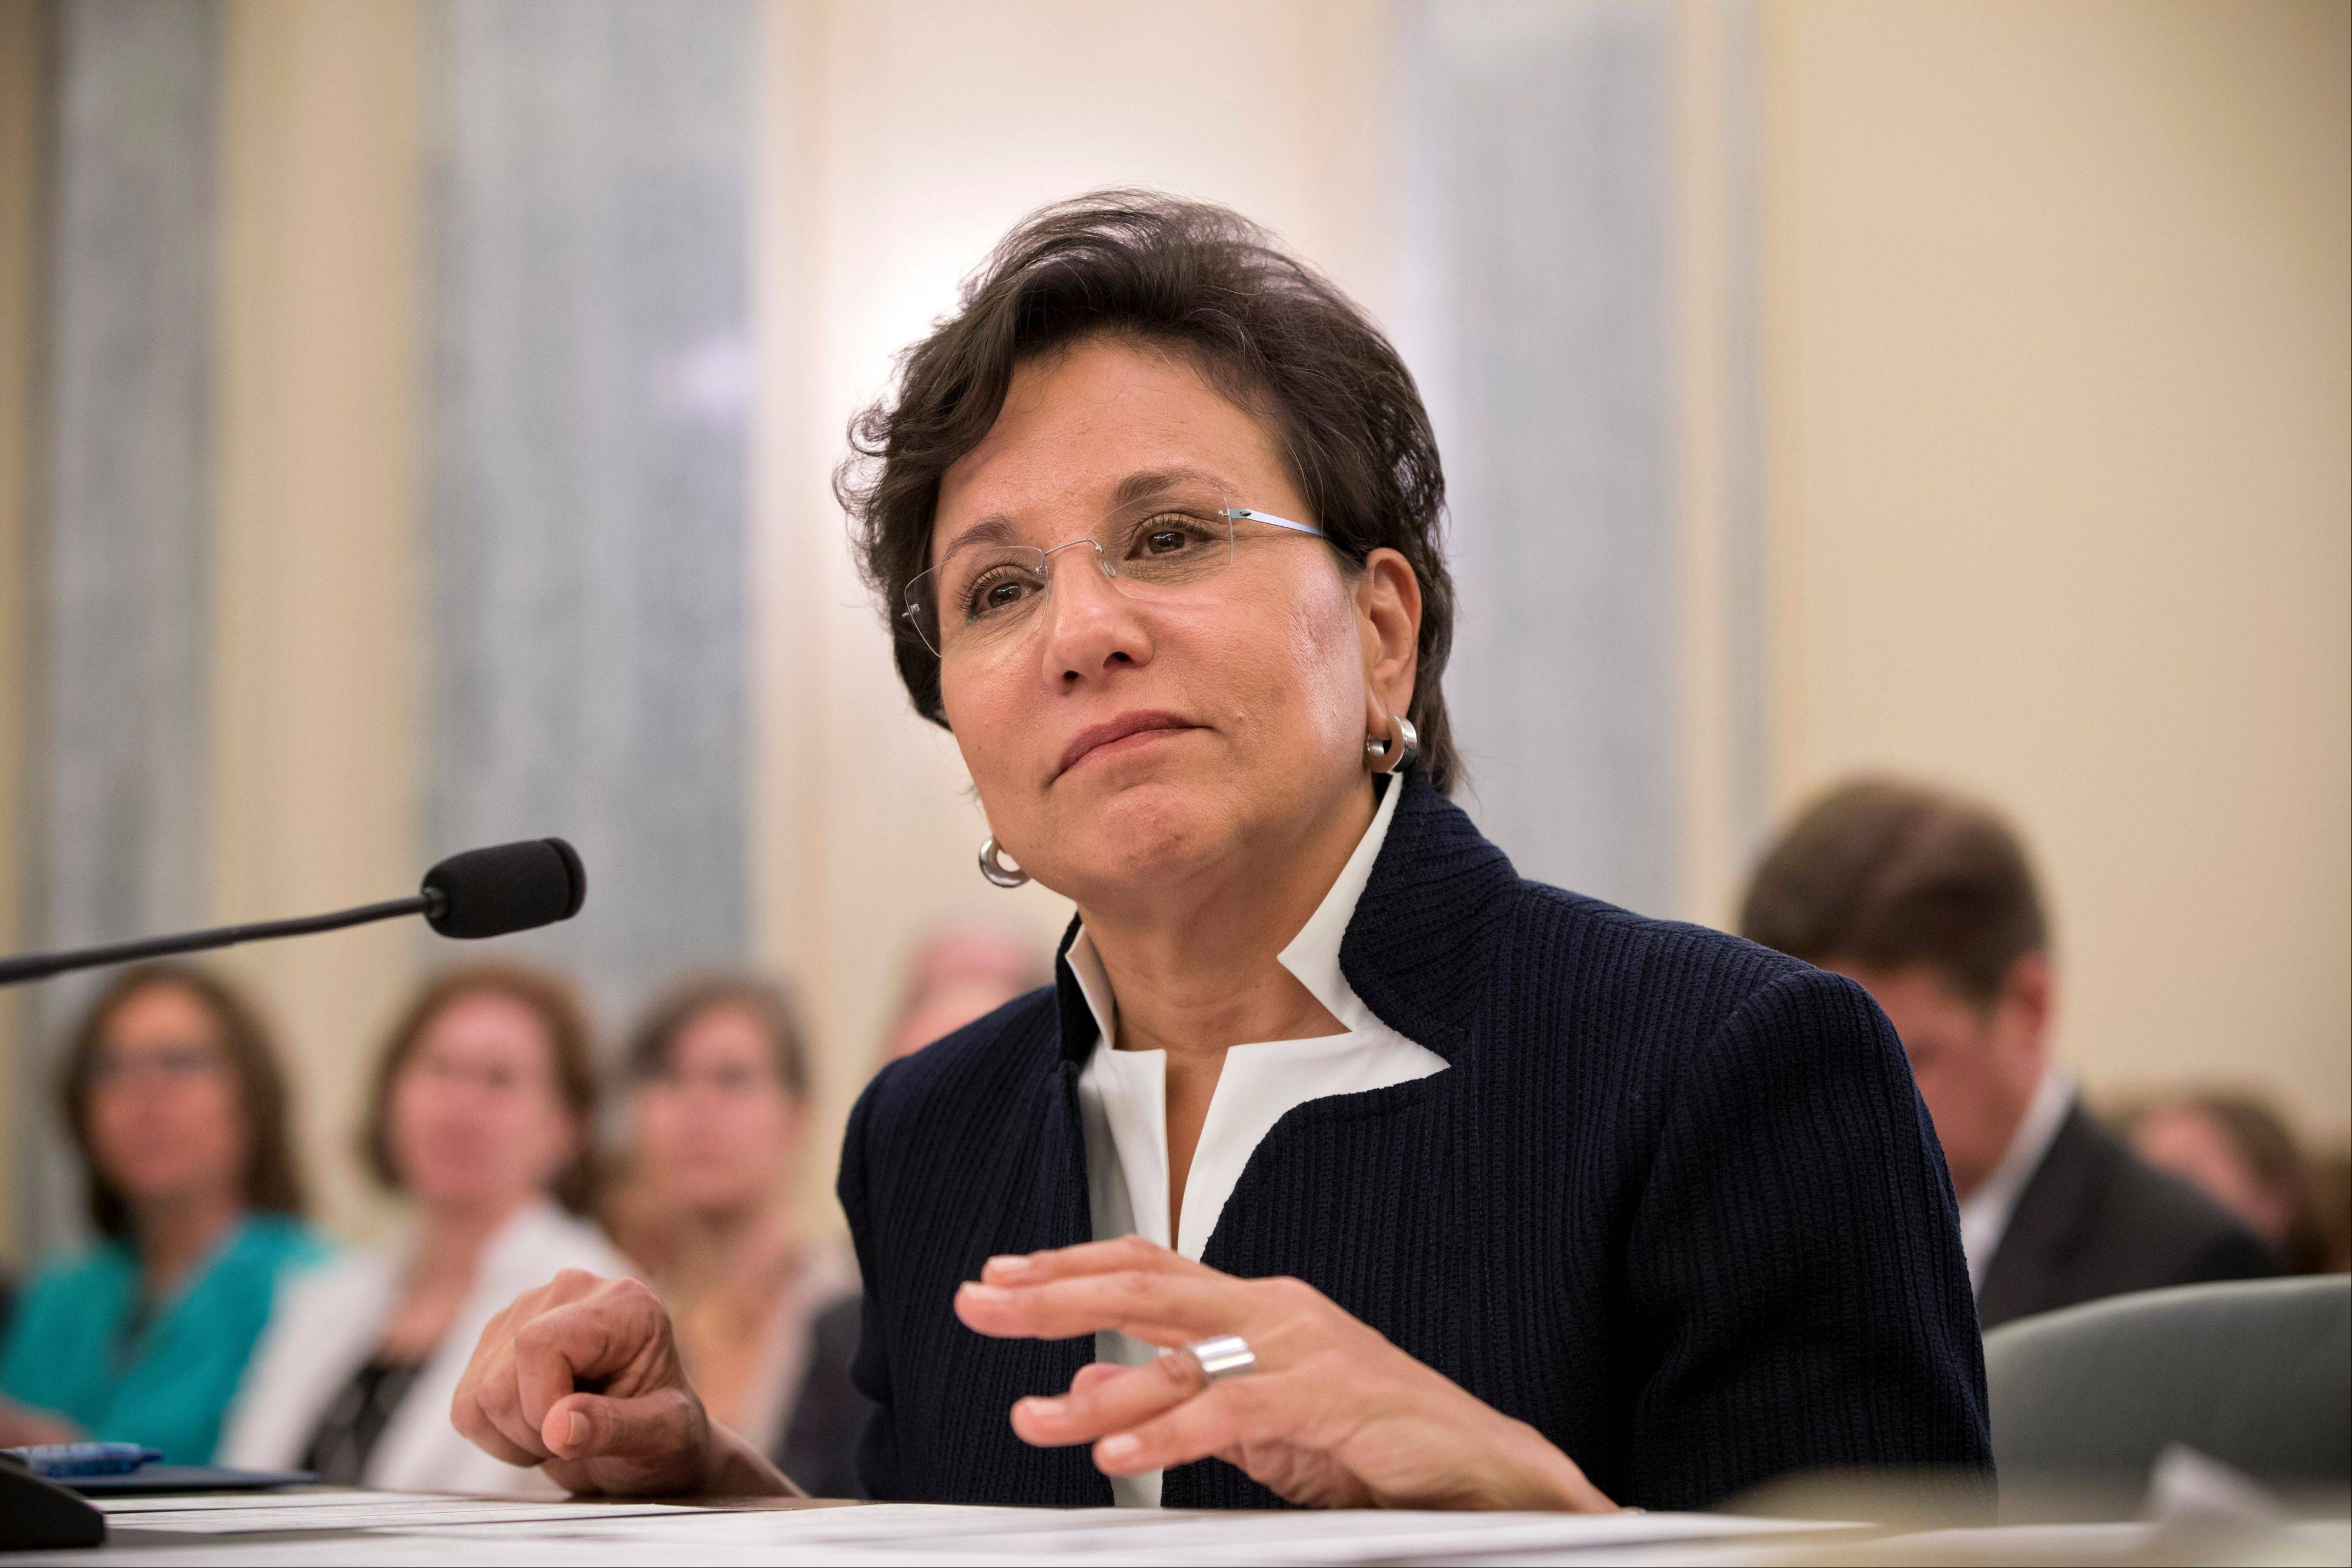 Chicago billionaire business executive Penny Pritzker, President Obama's pick for Commerce Secretary, testifies on Capitol Hill in Washington.